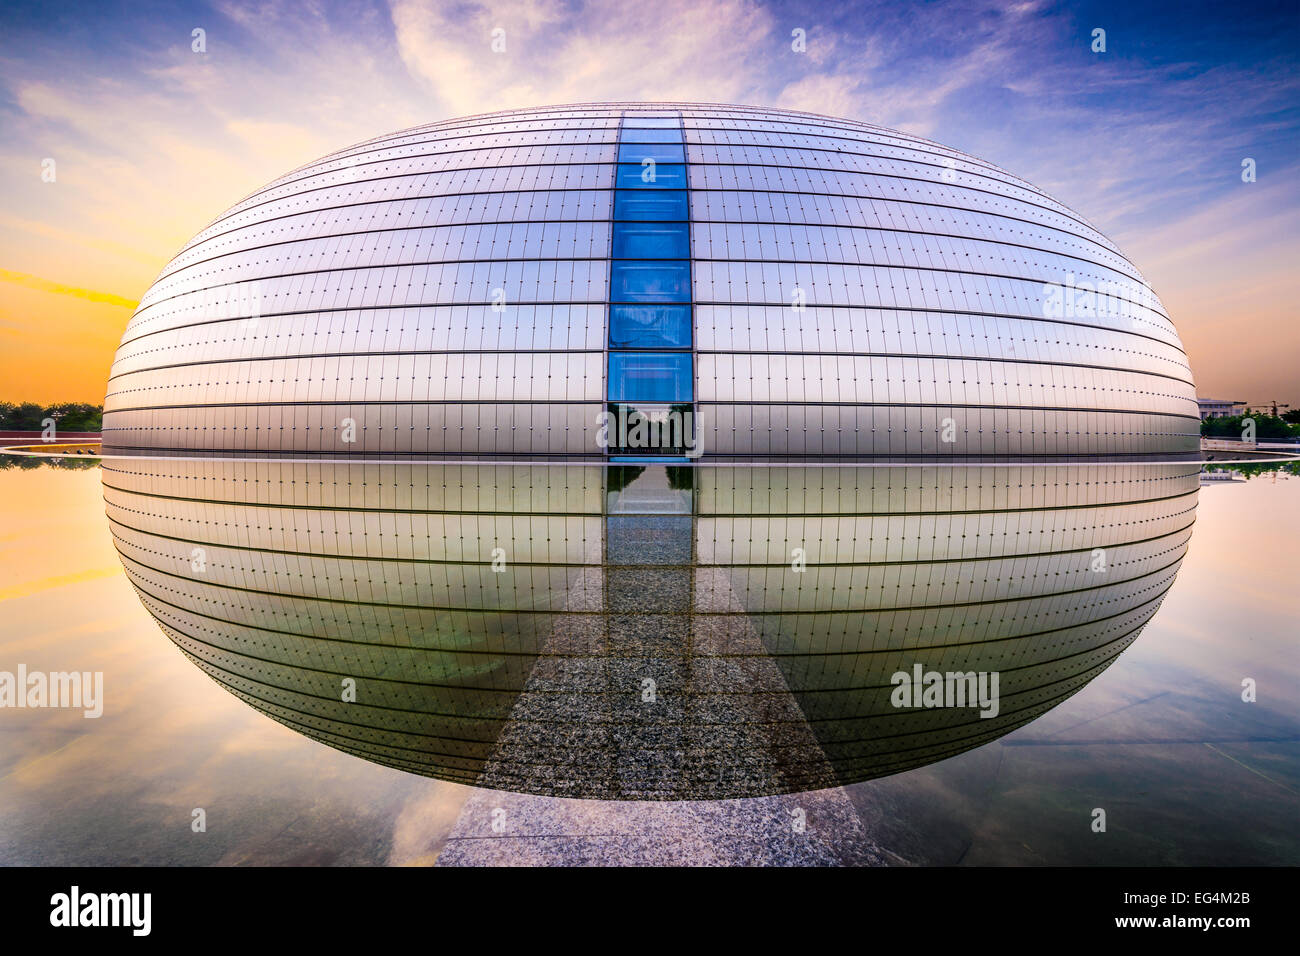 National Centre for the Performing Arts. The futuristic design stirred controversy when the theater was completed - Stock Image